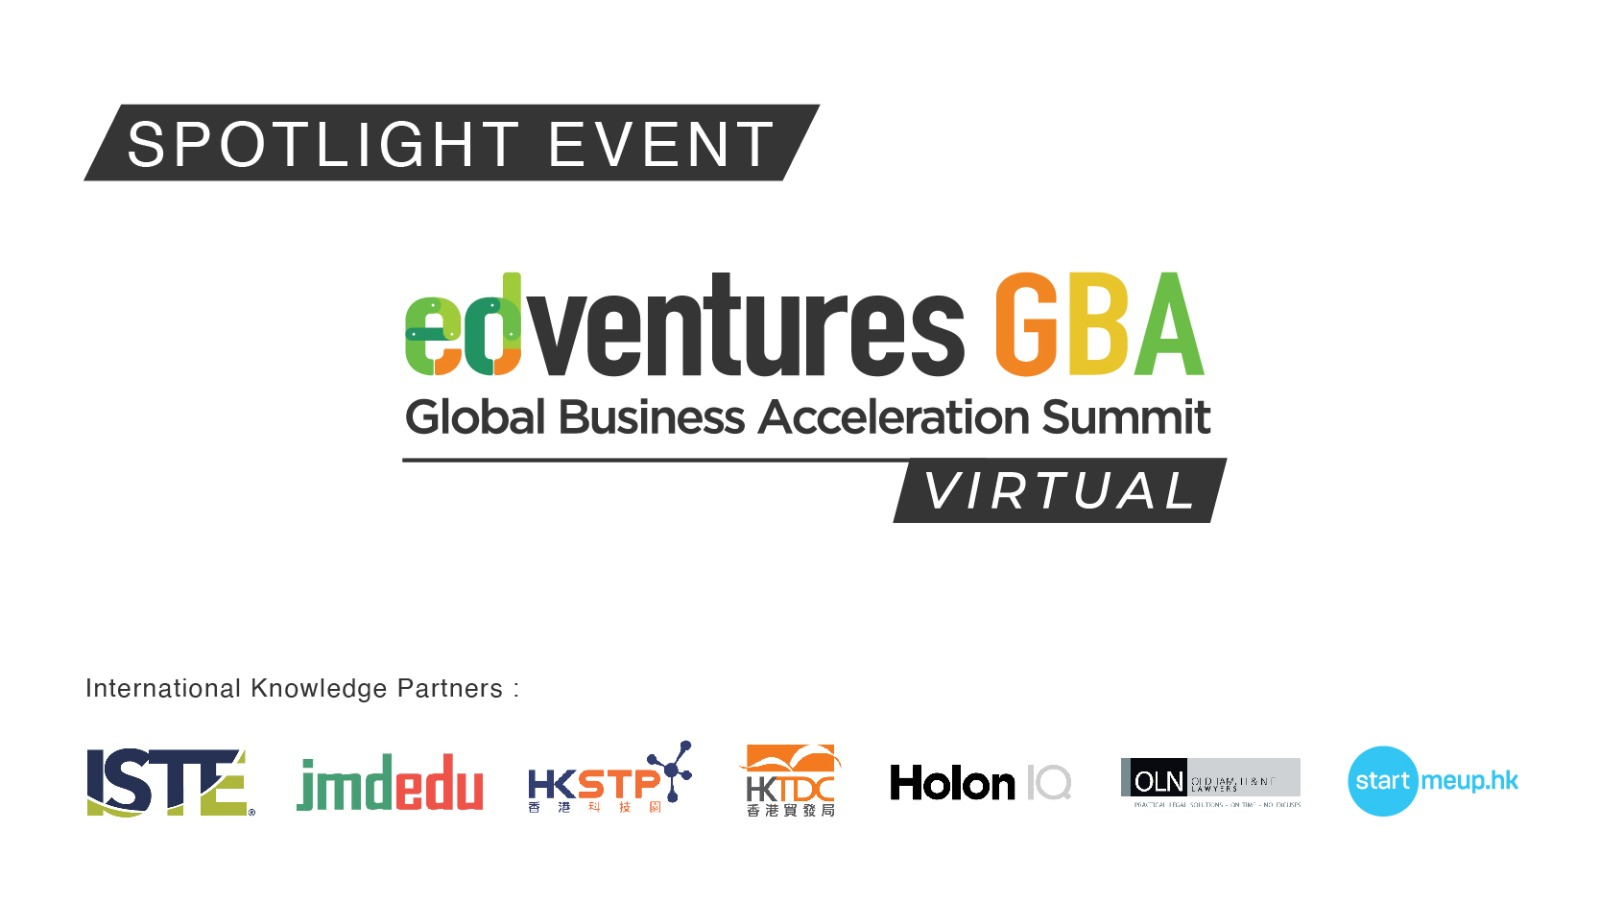 Edventures Global Business Acceleration Virtual Expo 2020